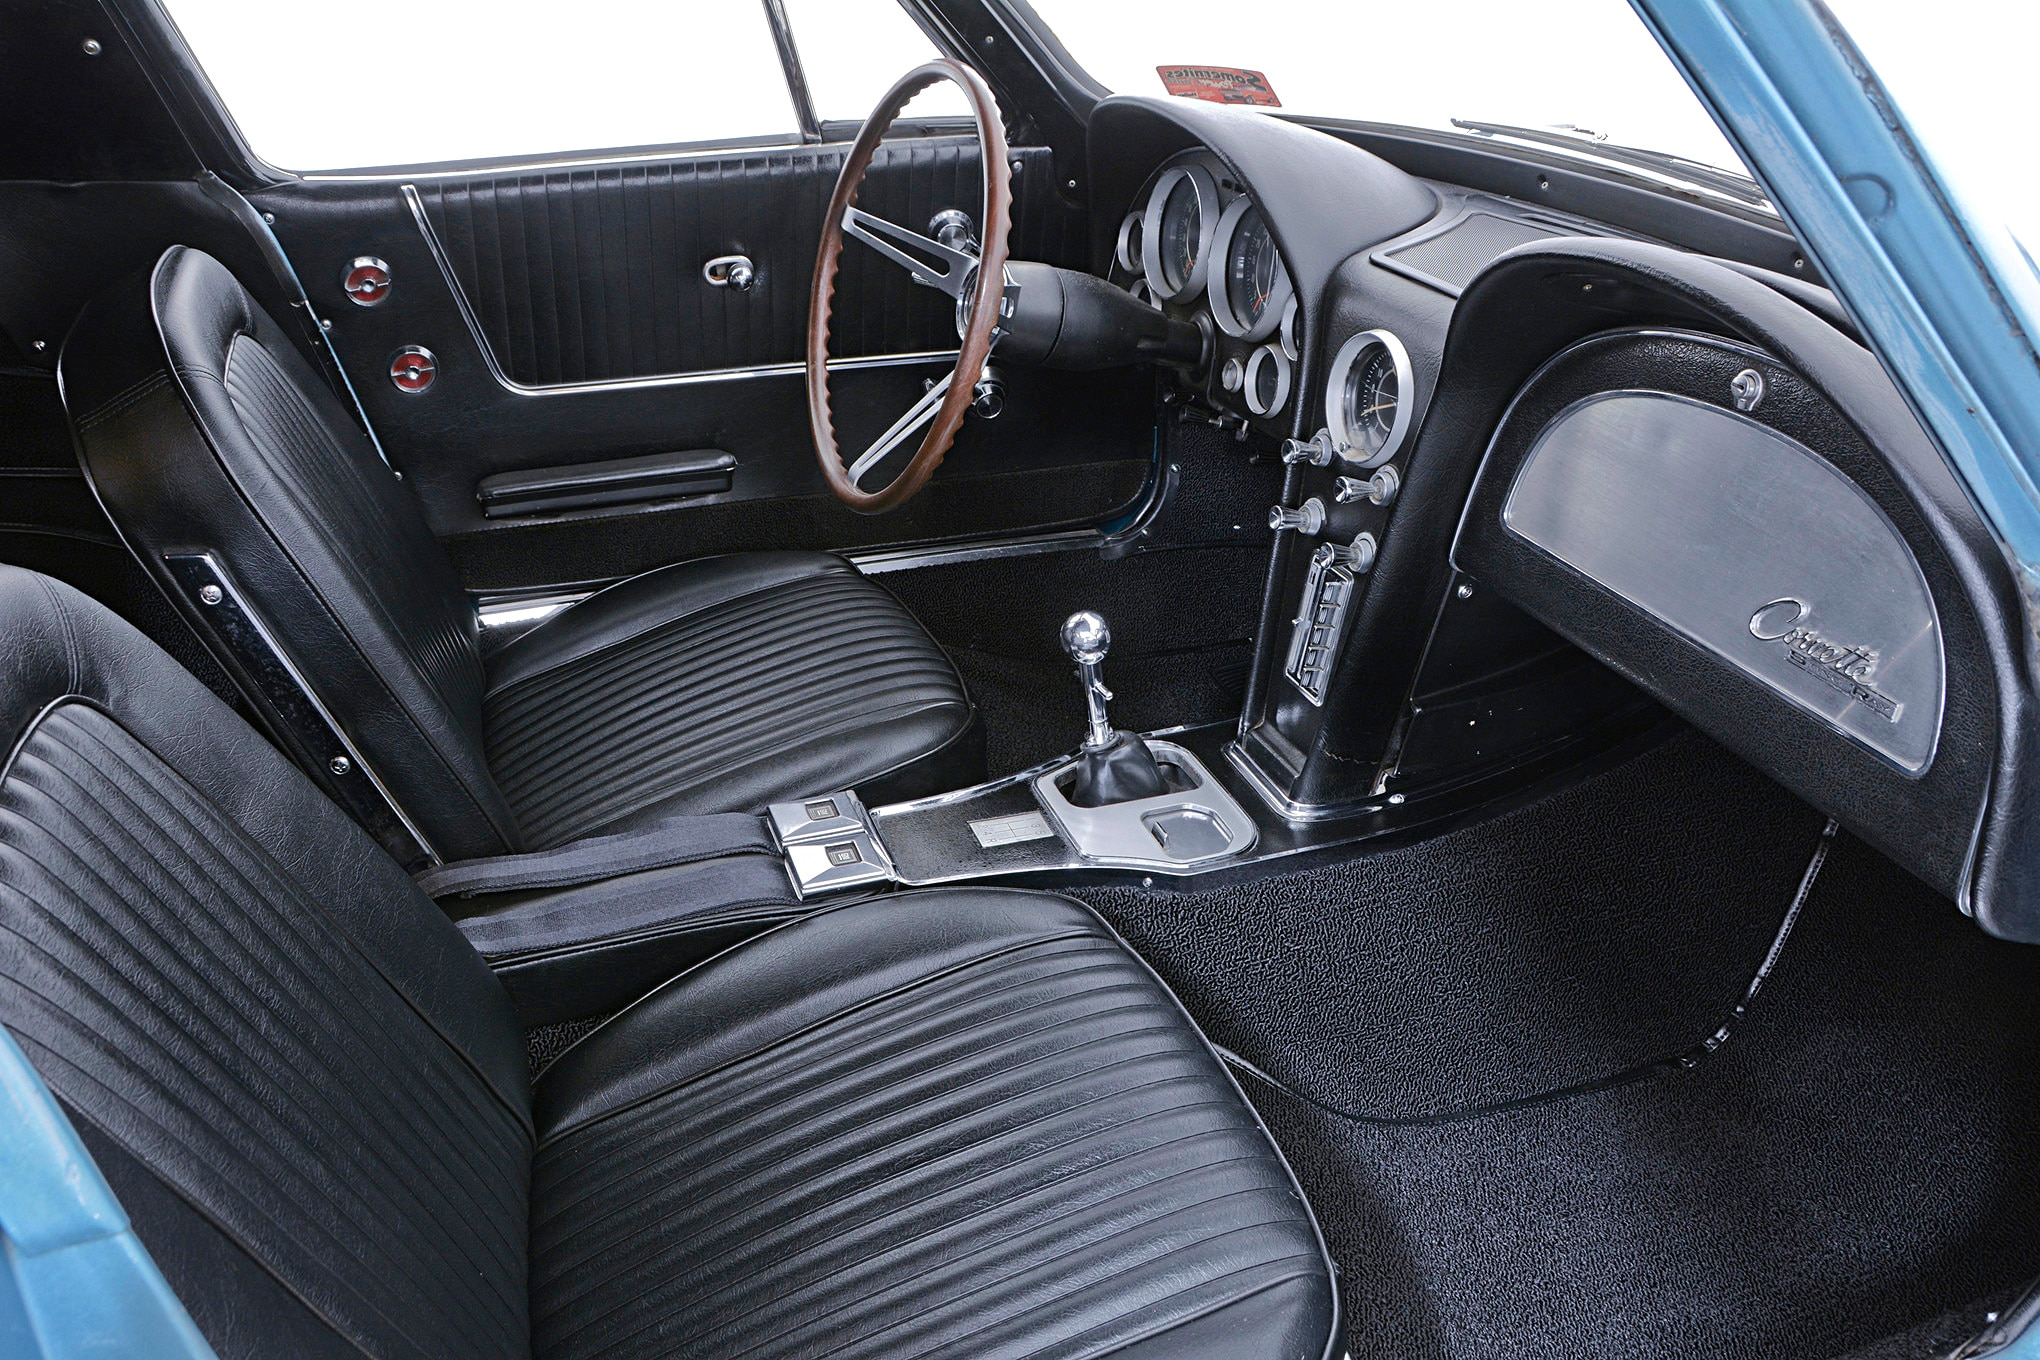 1964 Corvette Interior Carpet Install